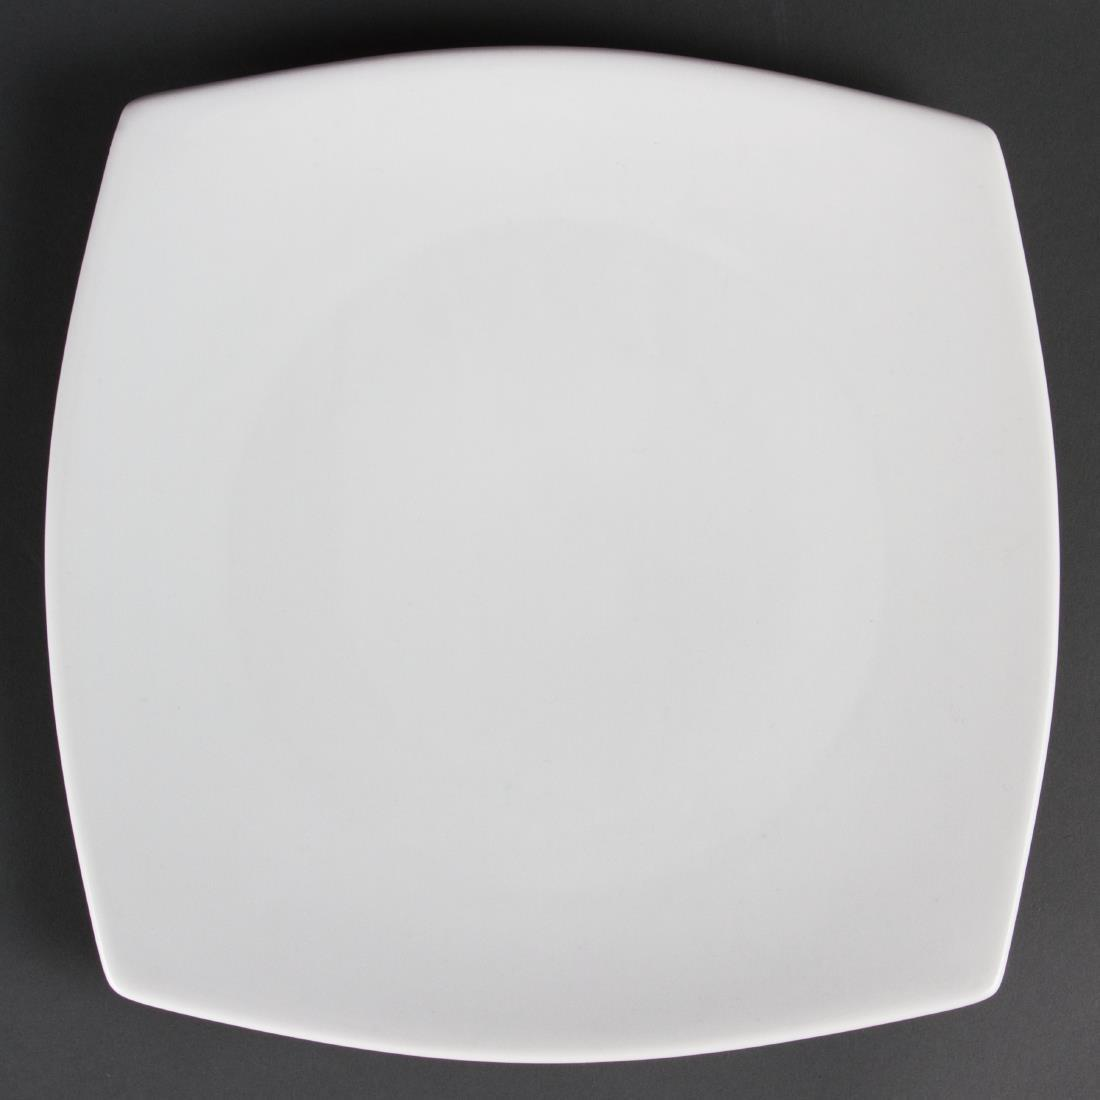 Olympia Whiteware Rounded Square Plates 270mm